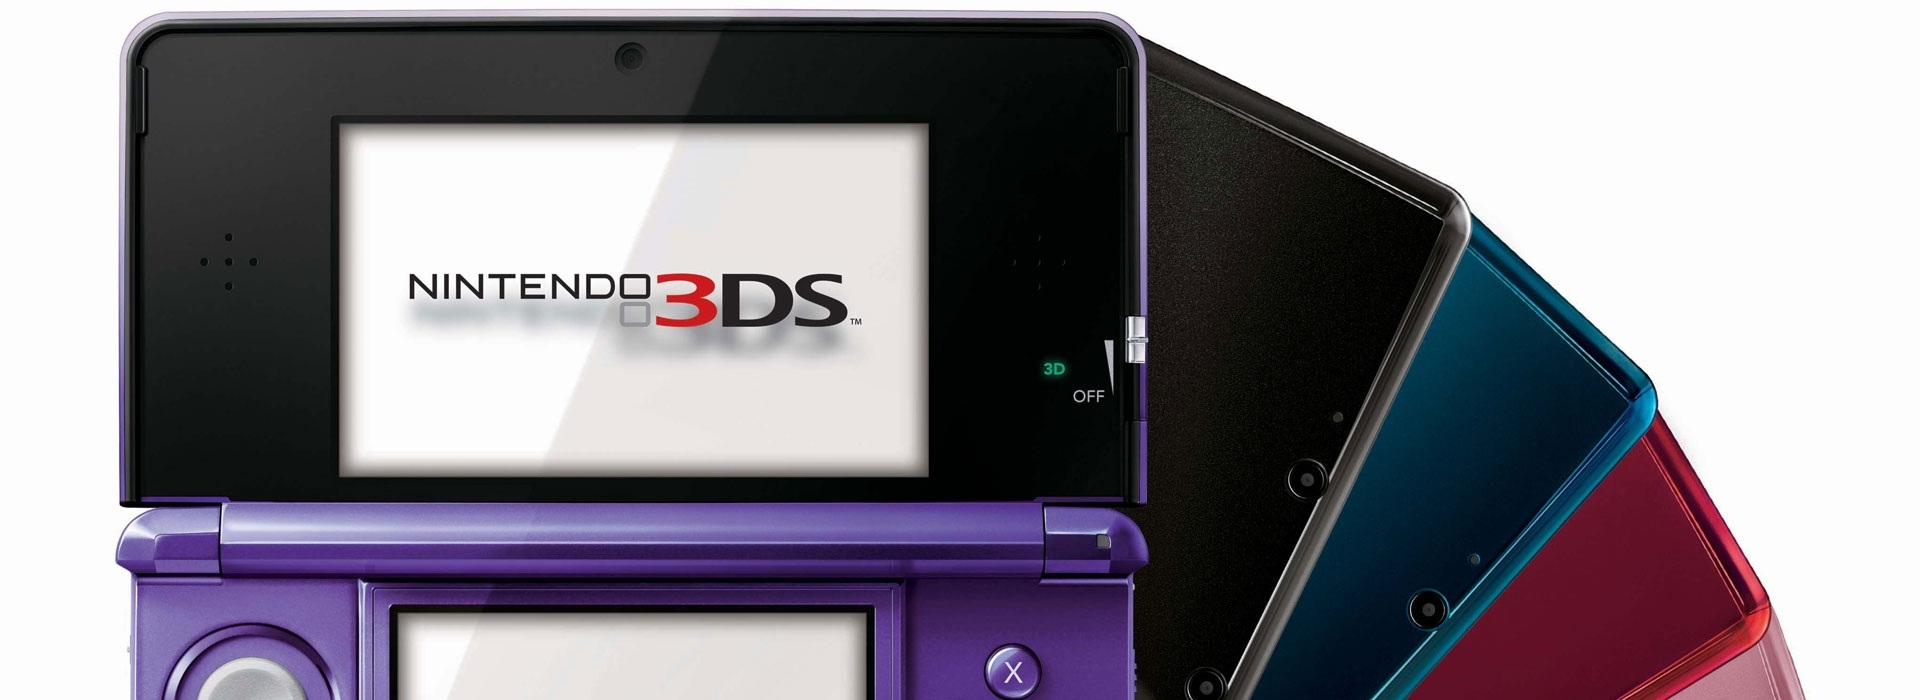 My Favourite Nintendo 3DS Feature: StreetPass